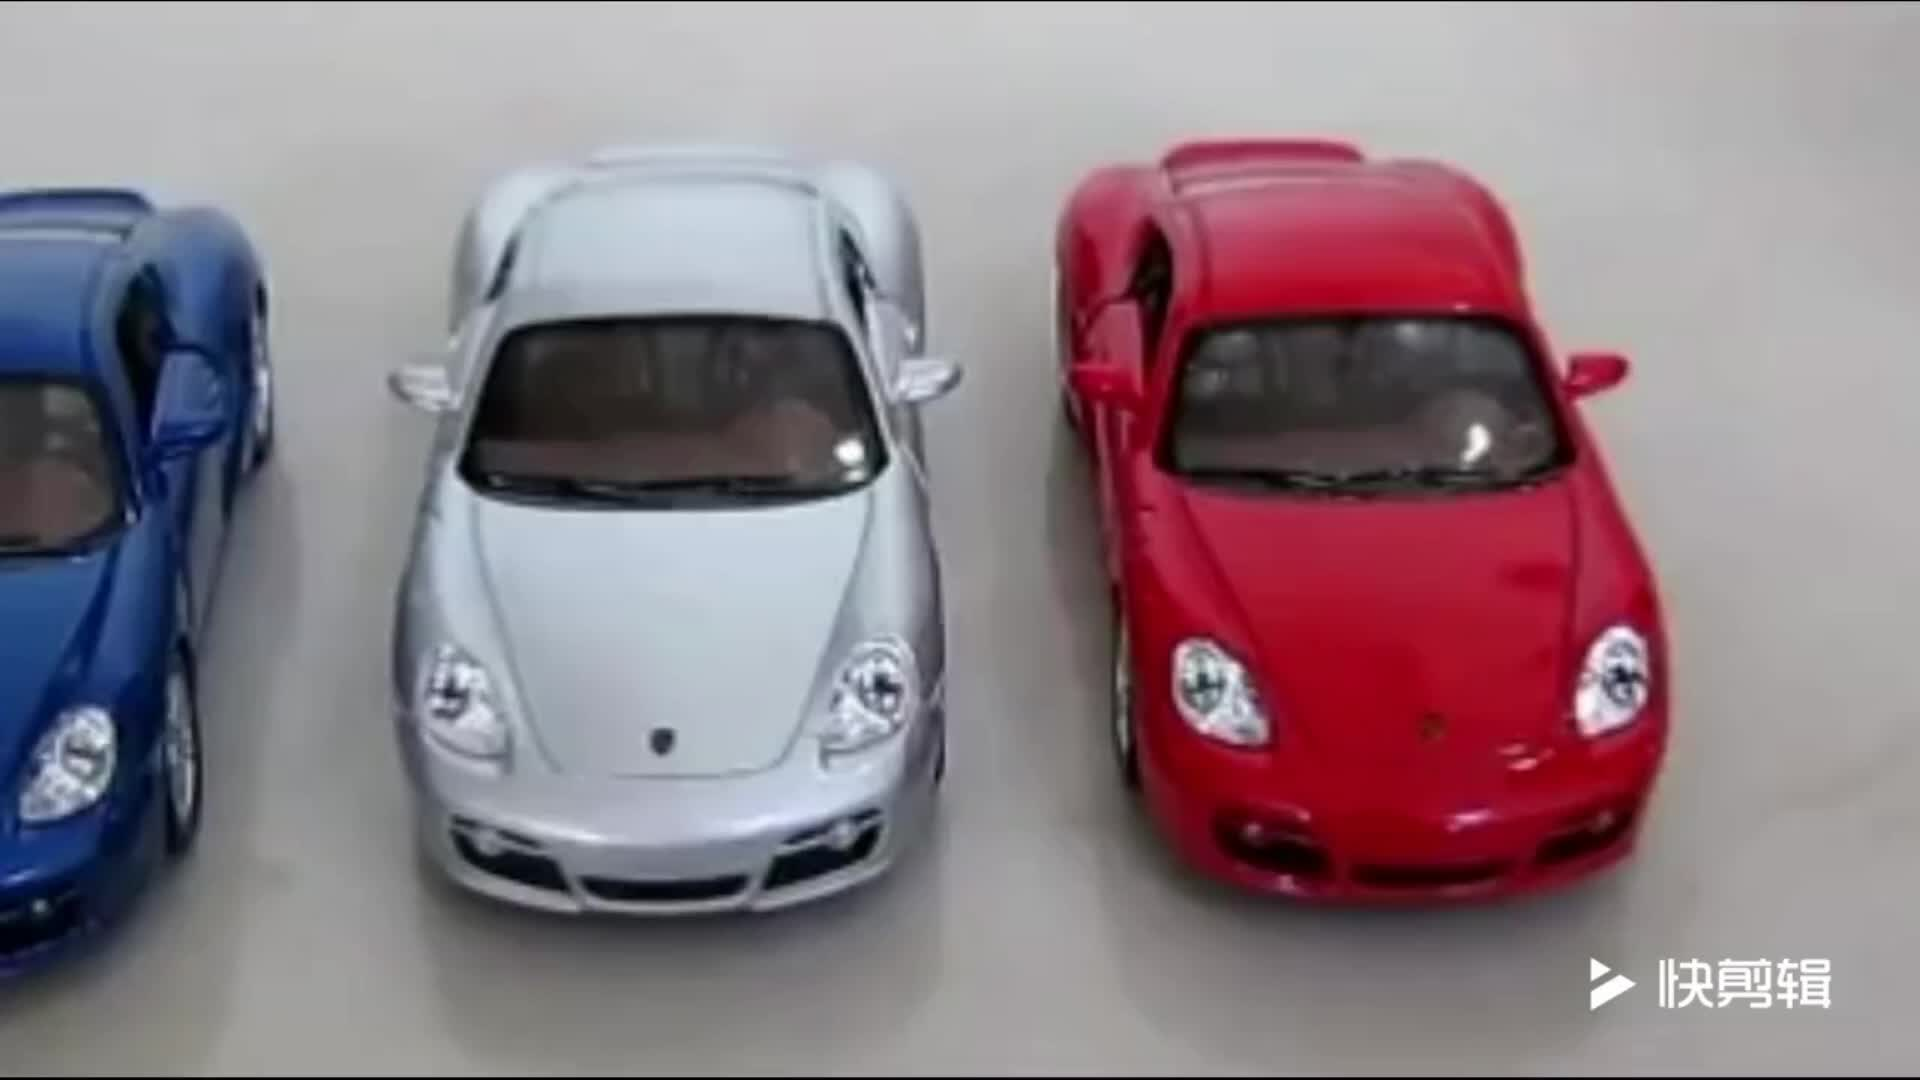 Foreign Trade Hot Sale simulation 1:36 Hurricane Alloy Model Children's Diecast Car Model Toy Vehicles